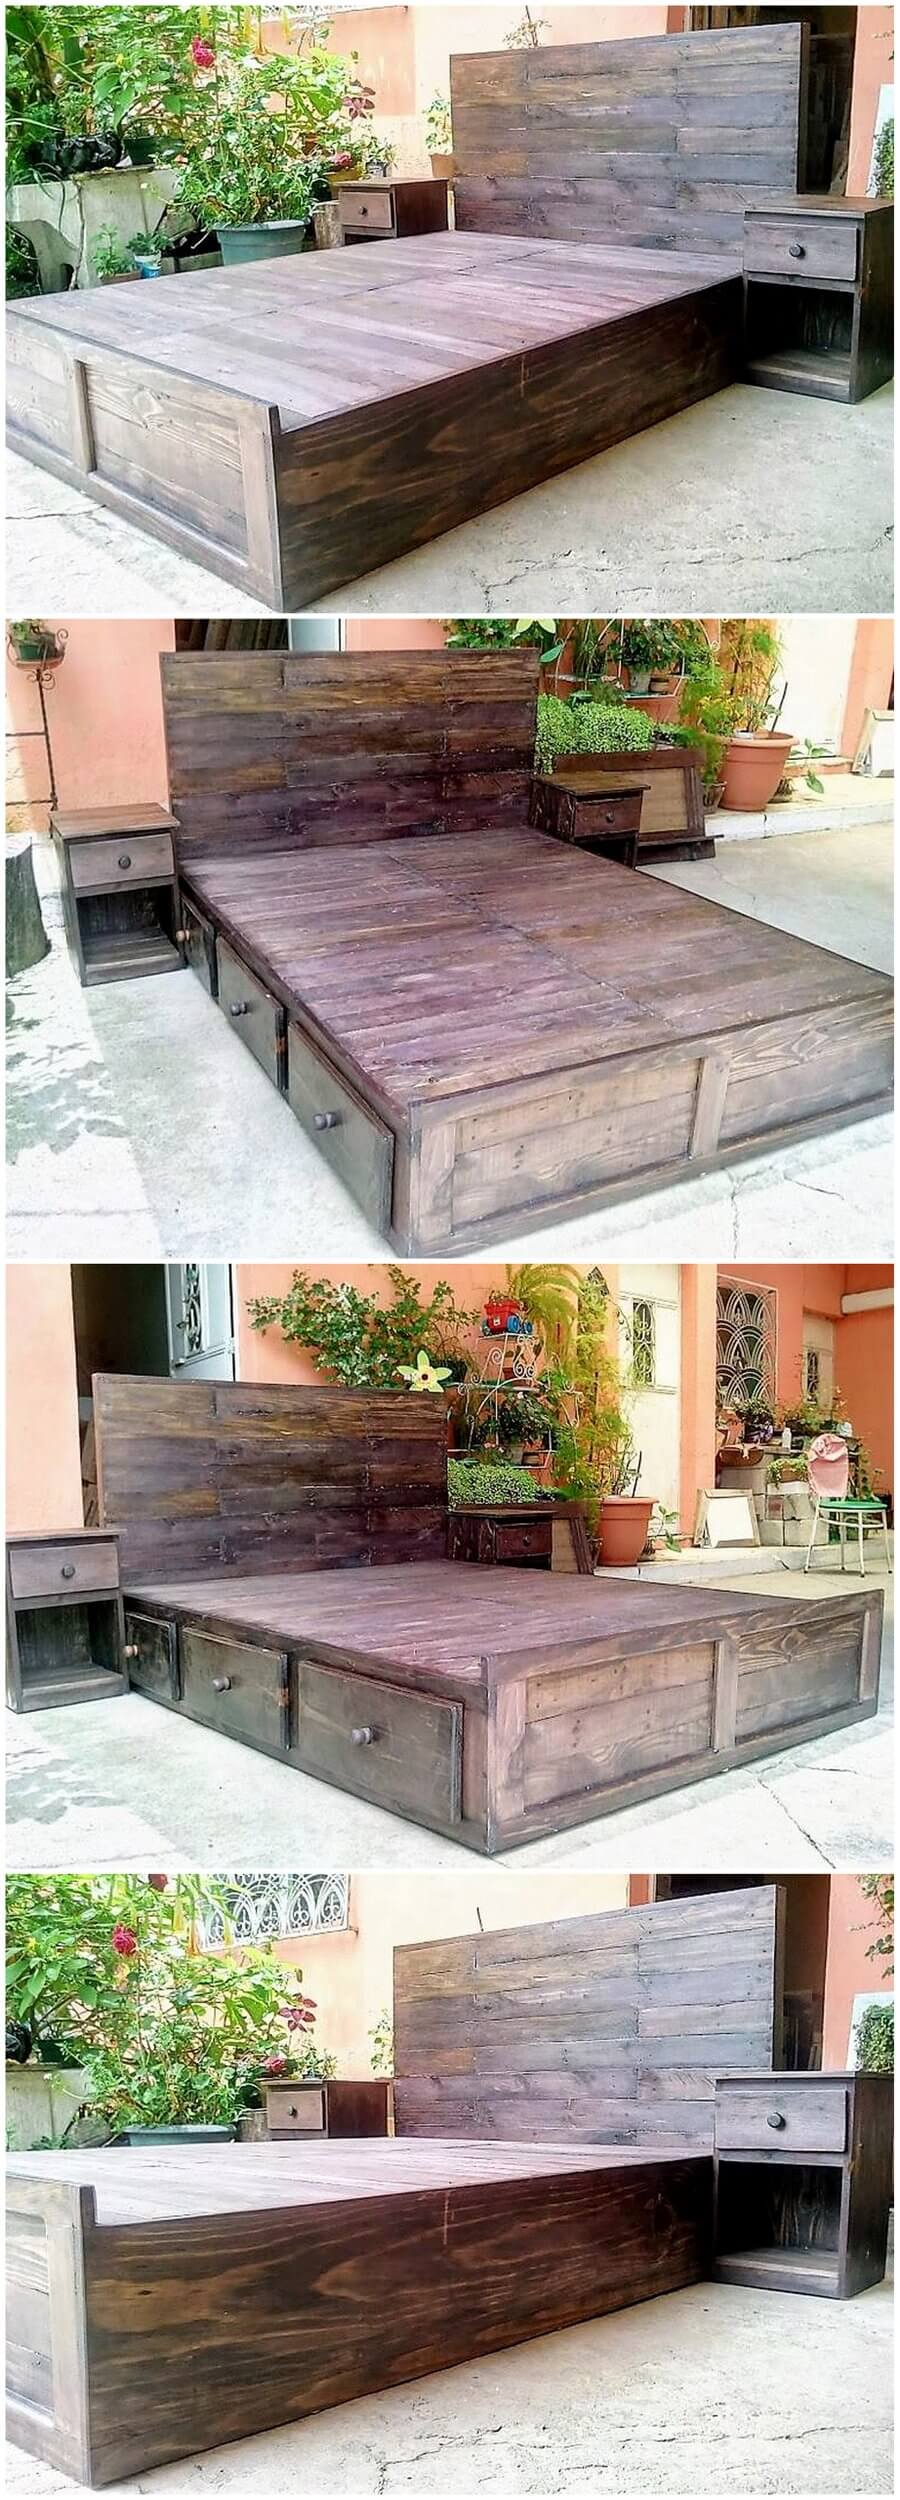 Reused Wood Pallets Bed Giant Bed Plan